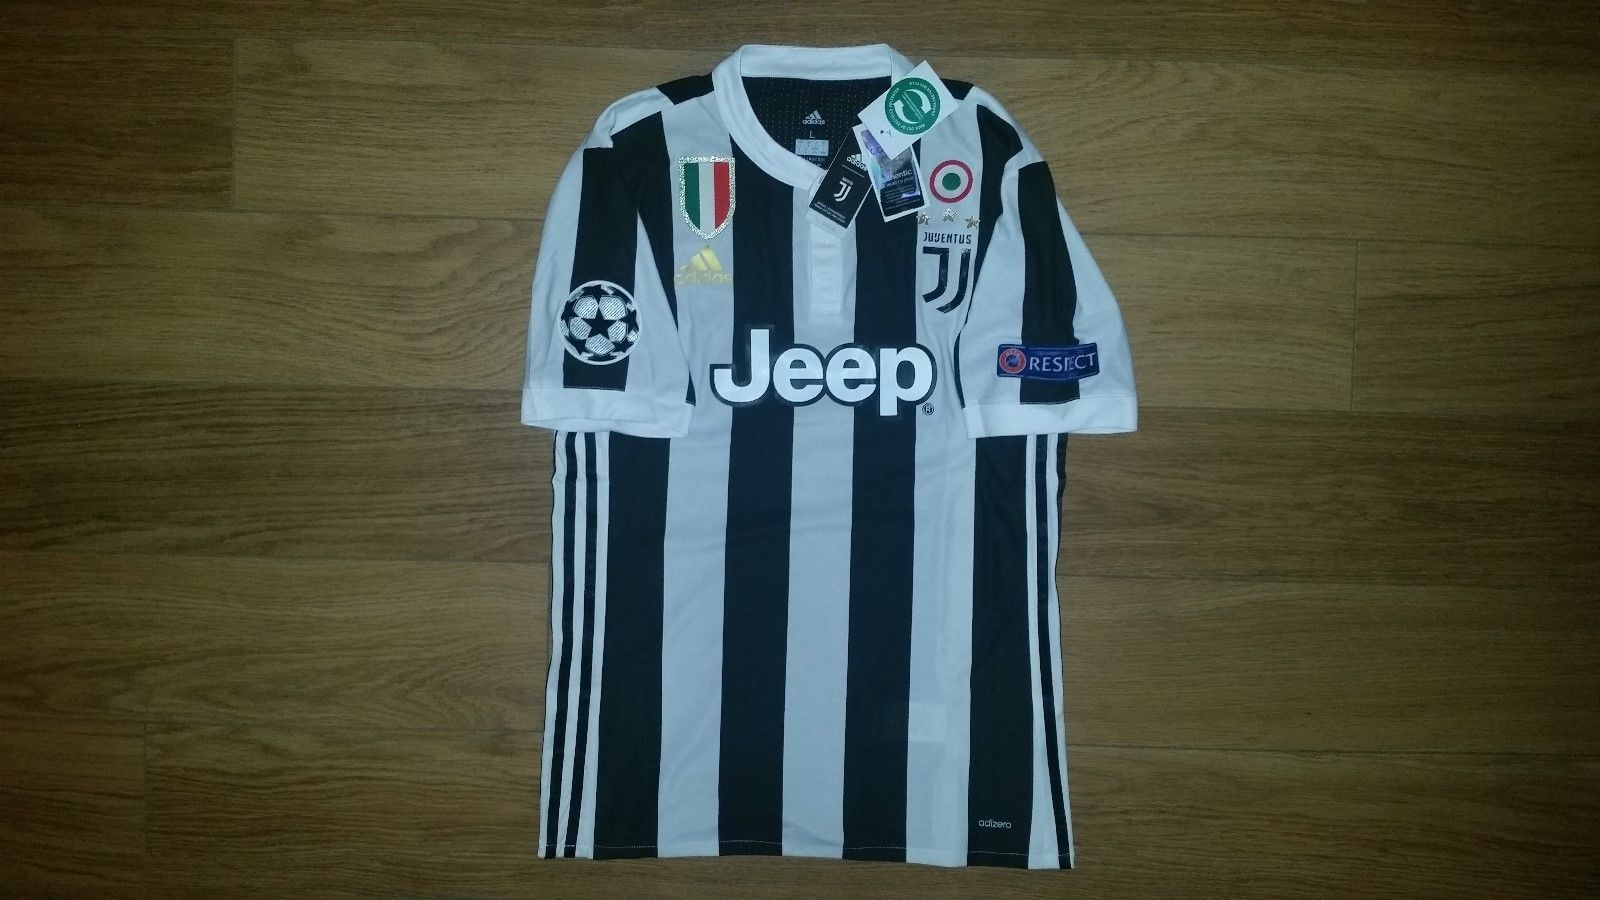 af2f1b8830a Paulo Dybala Juventus Home Jersey Champions League 17 18 Player Version  Size L